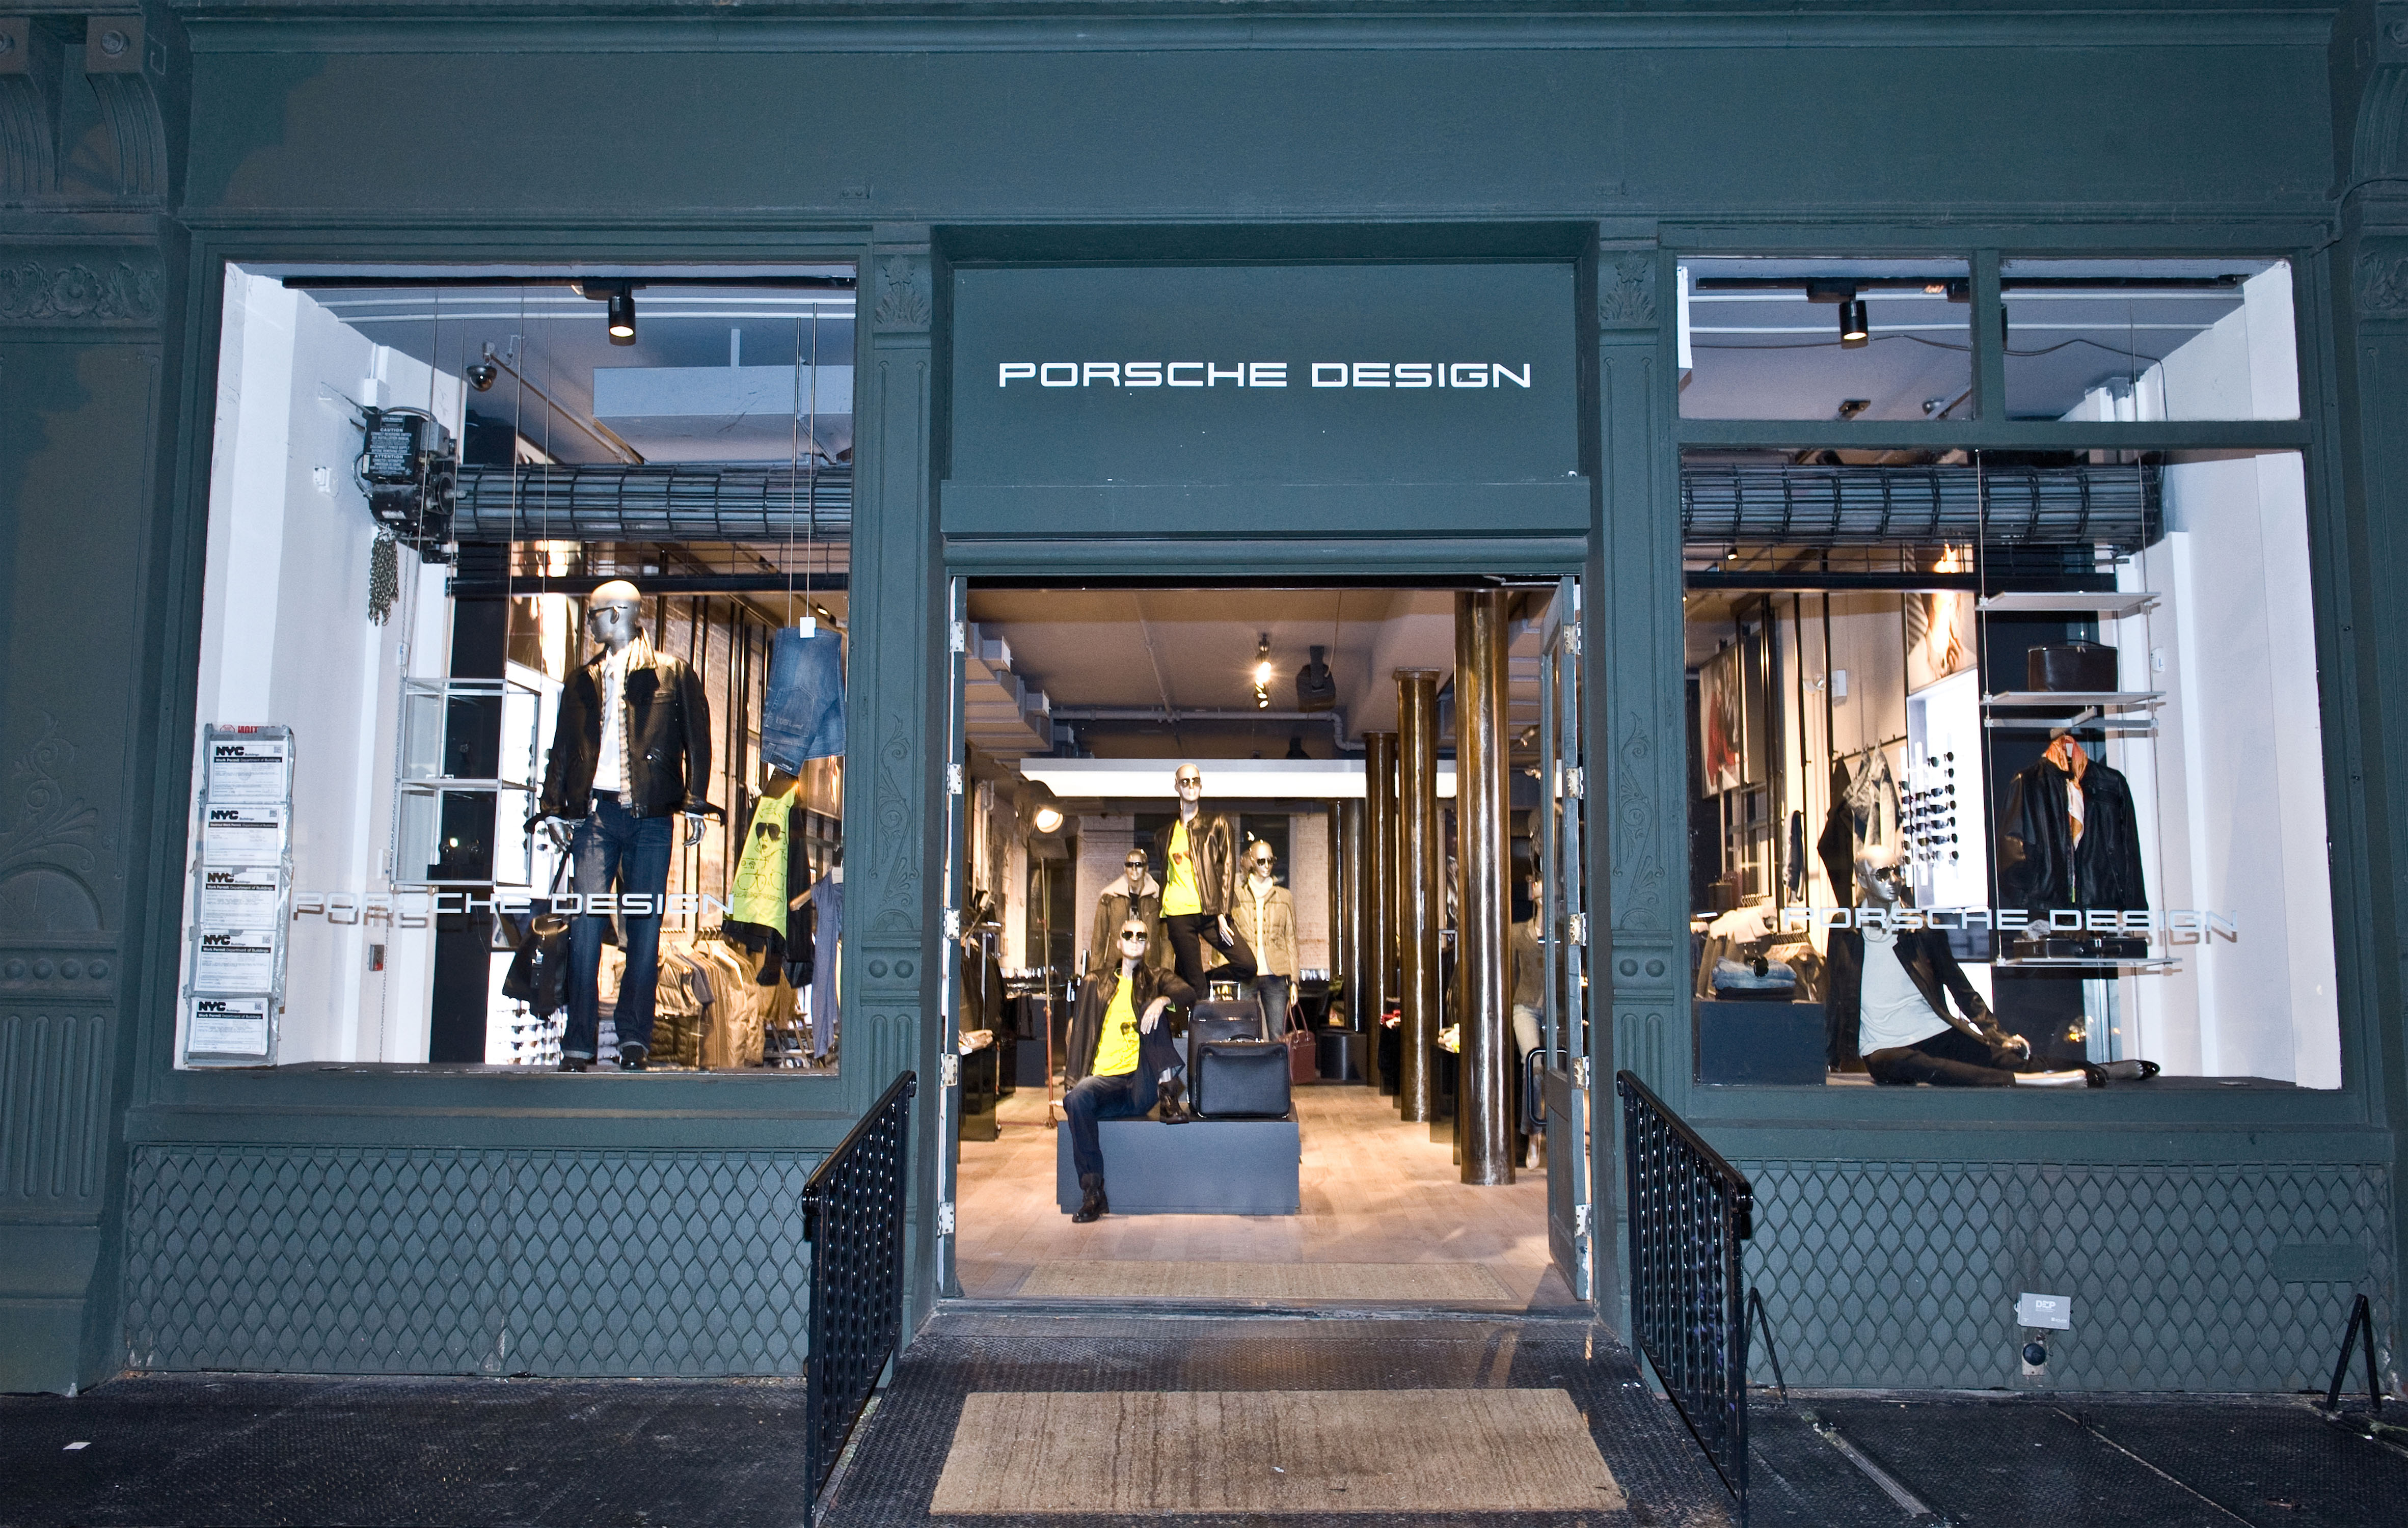 world s largest porsche design store in soho 2nd store in new york porsche everyday. Black Bedroom Furniture Sets. Home Design Ideas